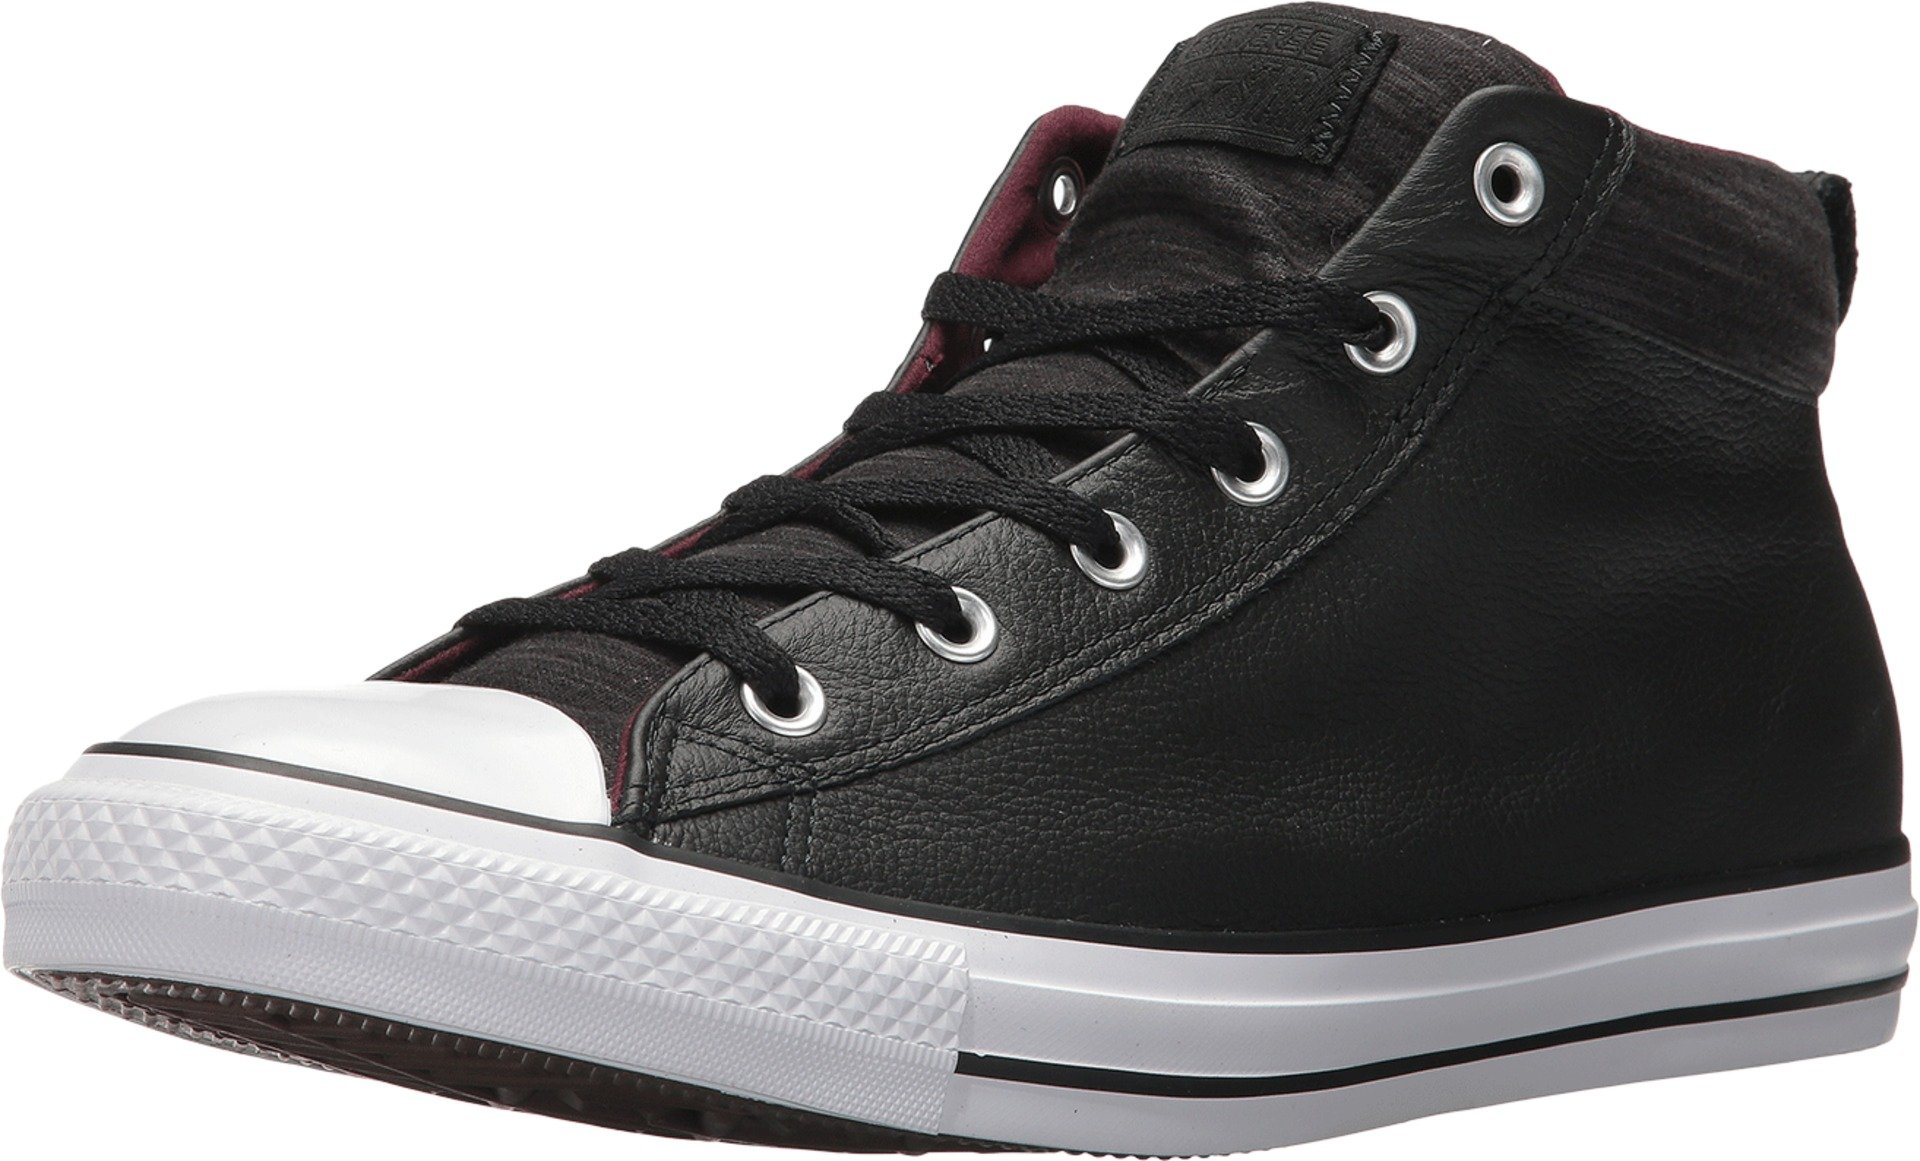 a73f3433144 Galleon - Converse All Star HIGH Street MID Leather Black White Fleece Size  11